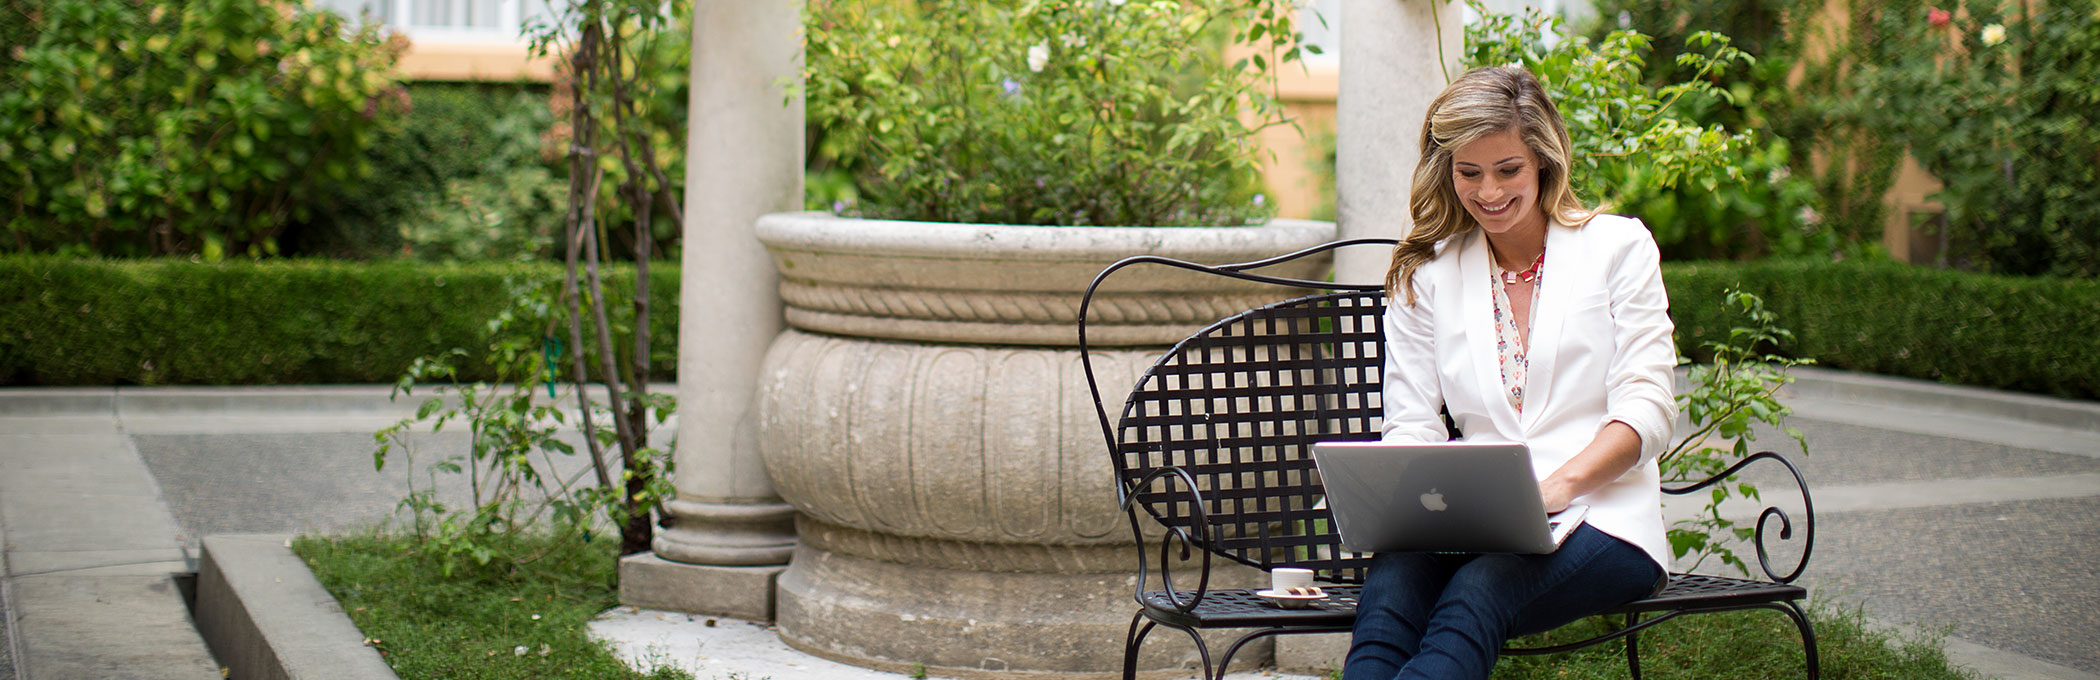 woman on macbook outdoors